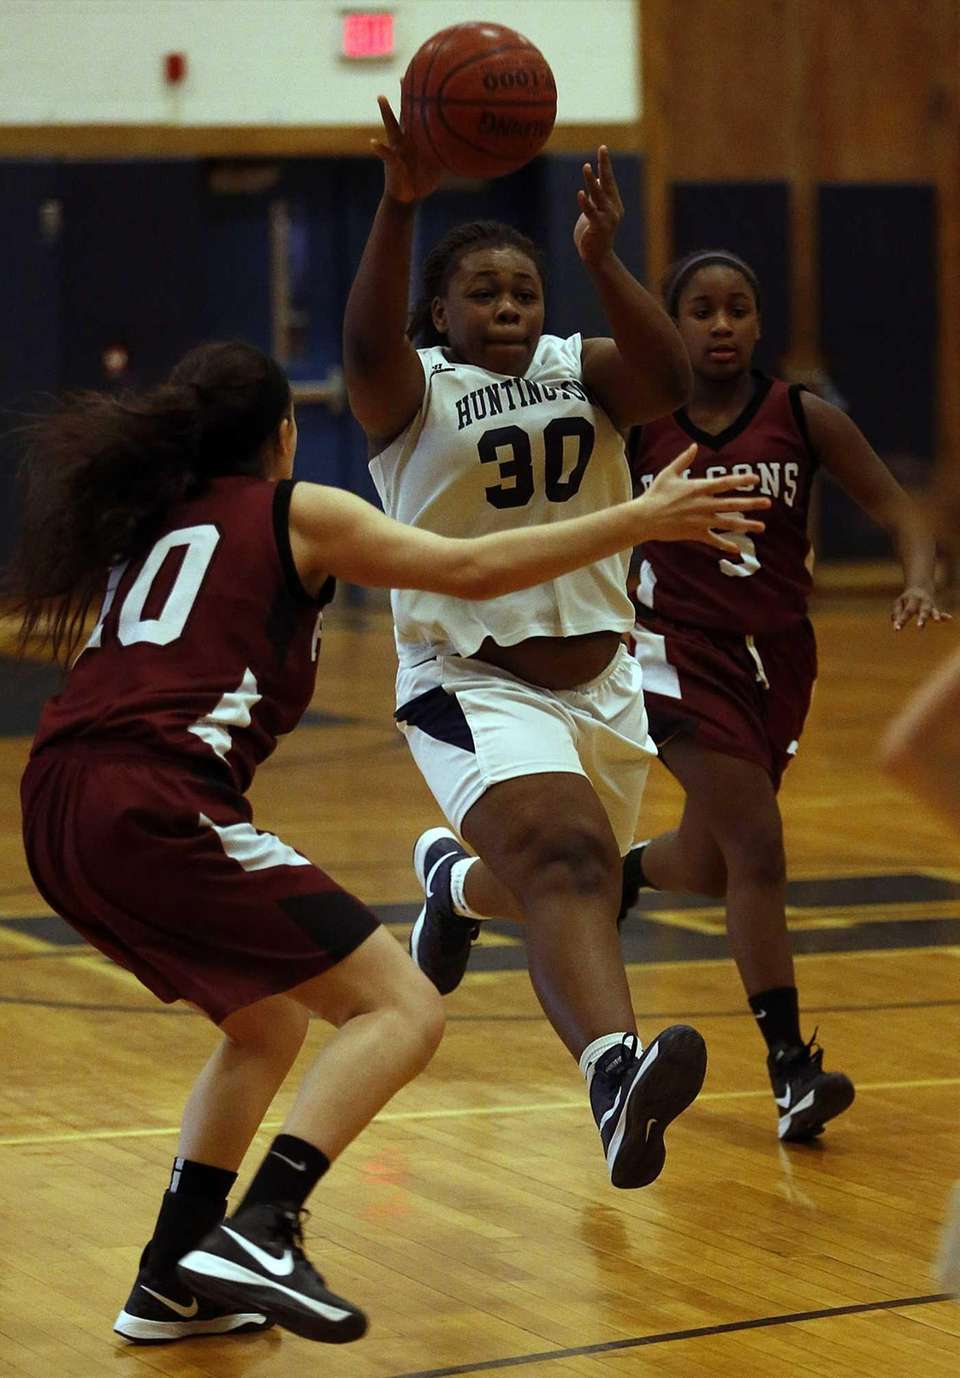 Huntington's Raynisha Witherspoon (30) pushes upcourt between Deer